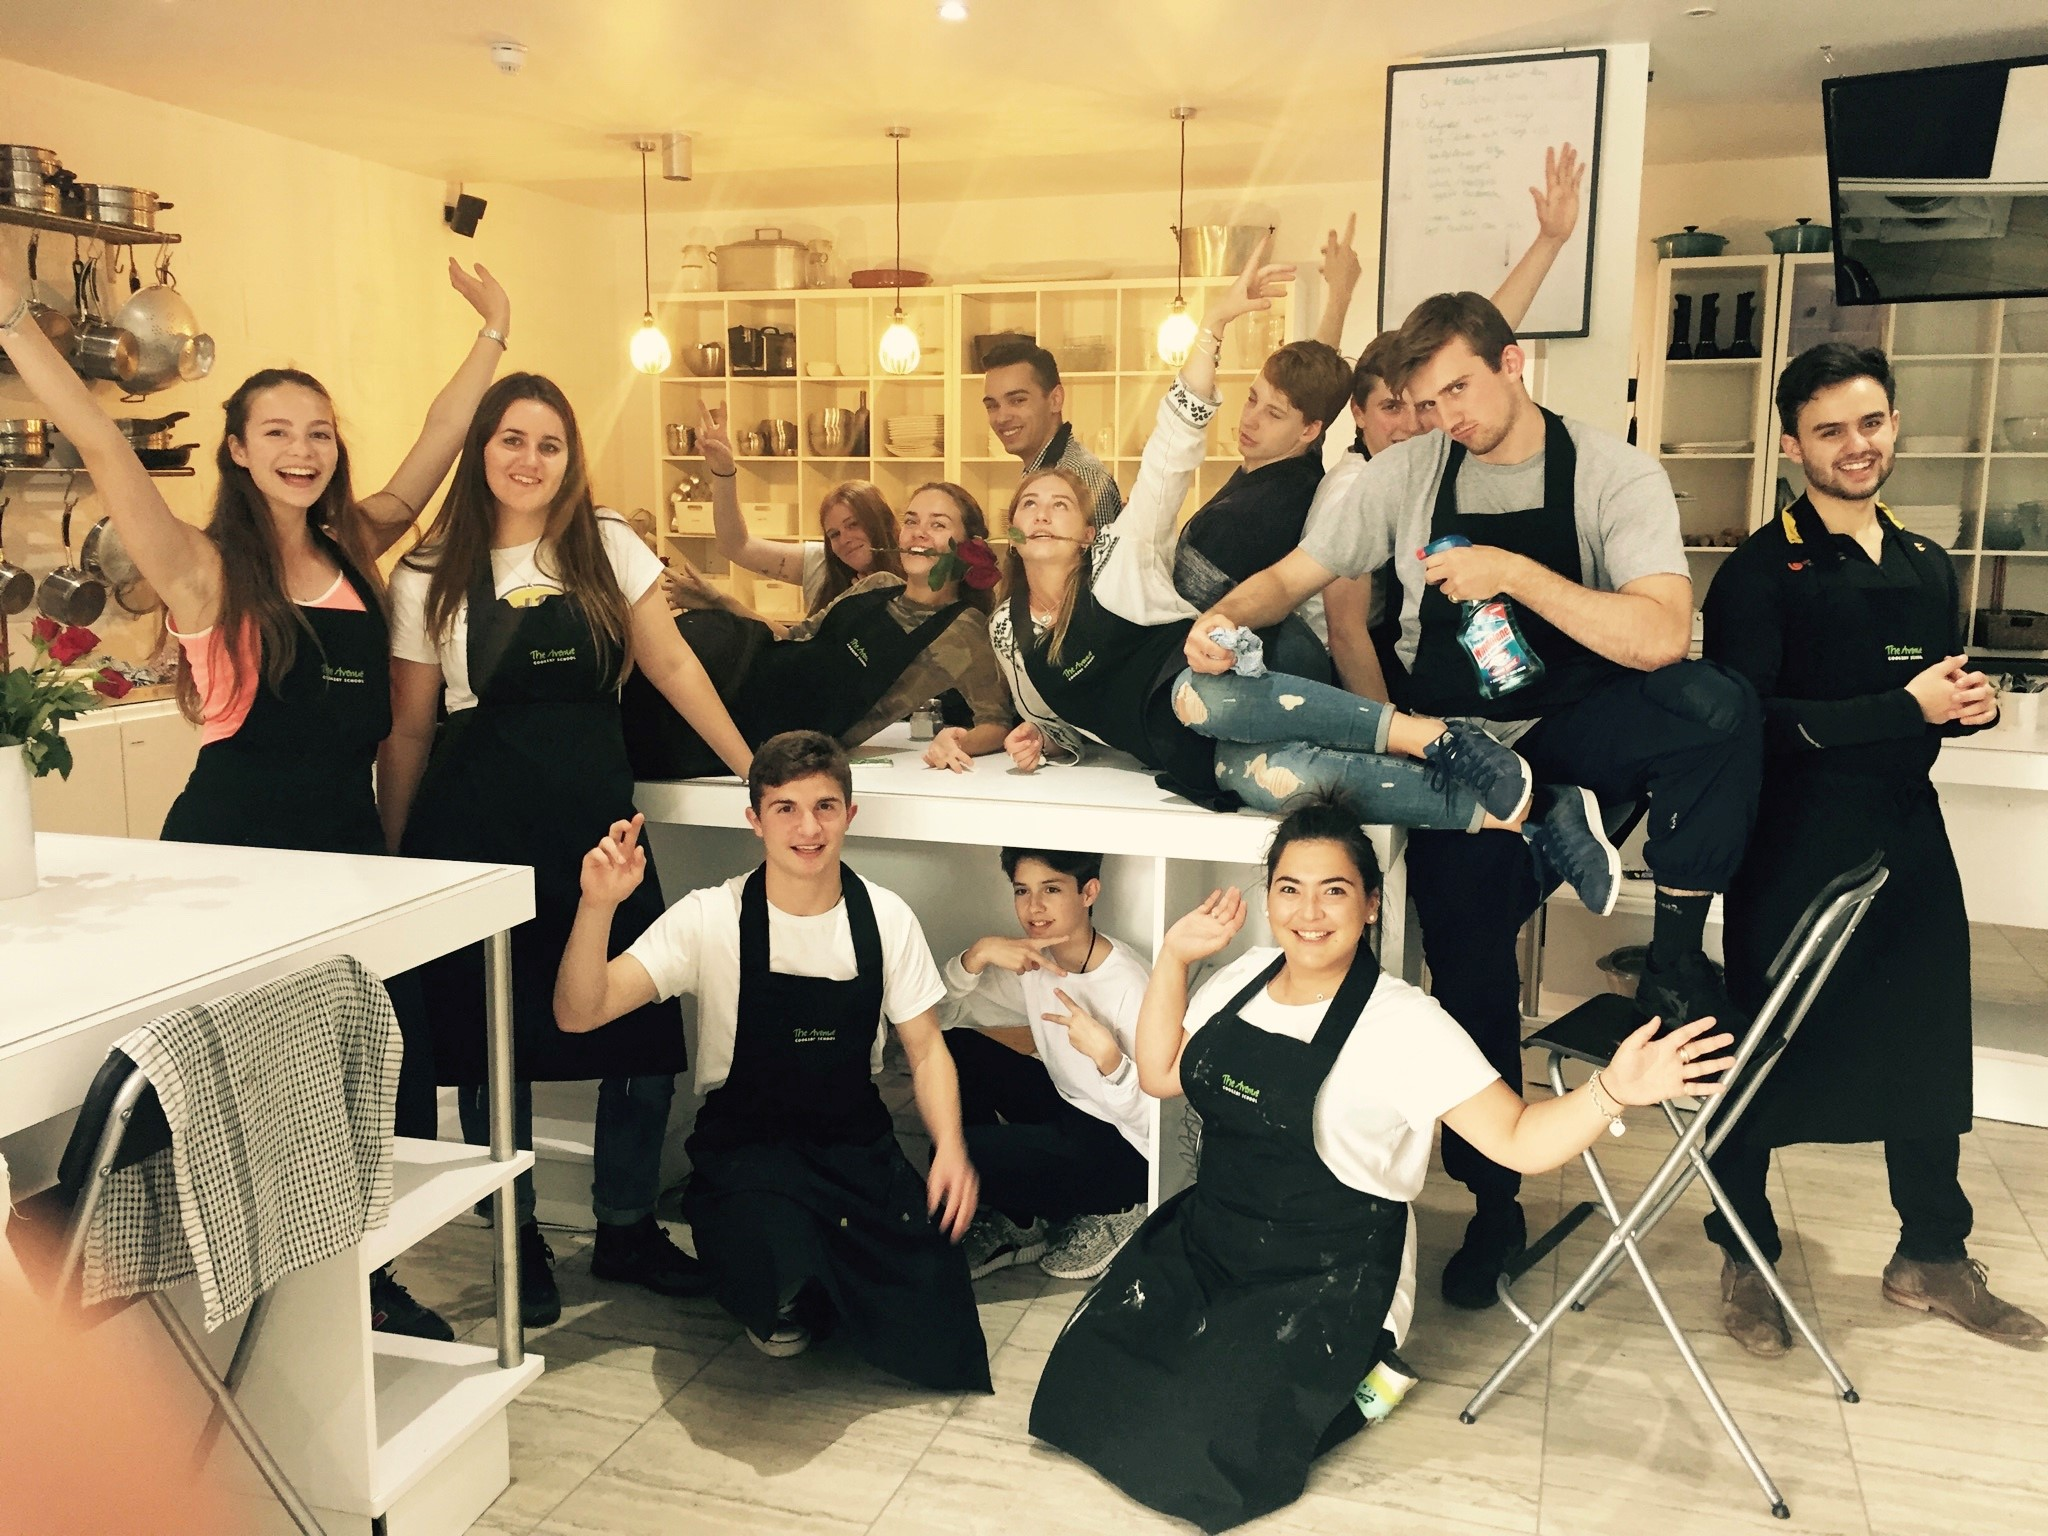 The Avenue Cookery School  has a range of courses suitable for beginner cooks looking to get into the world of cooking work.